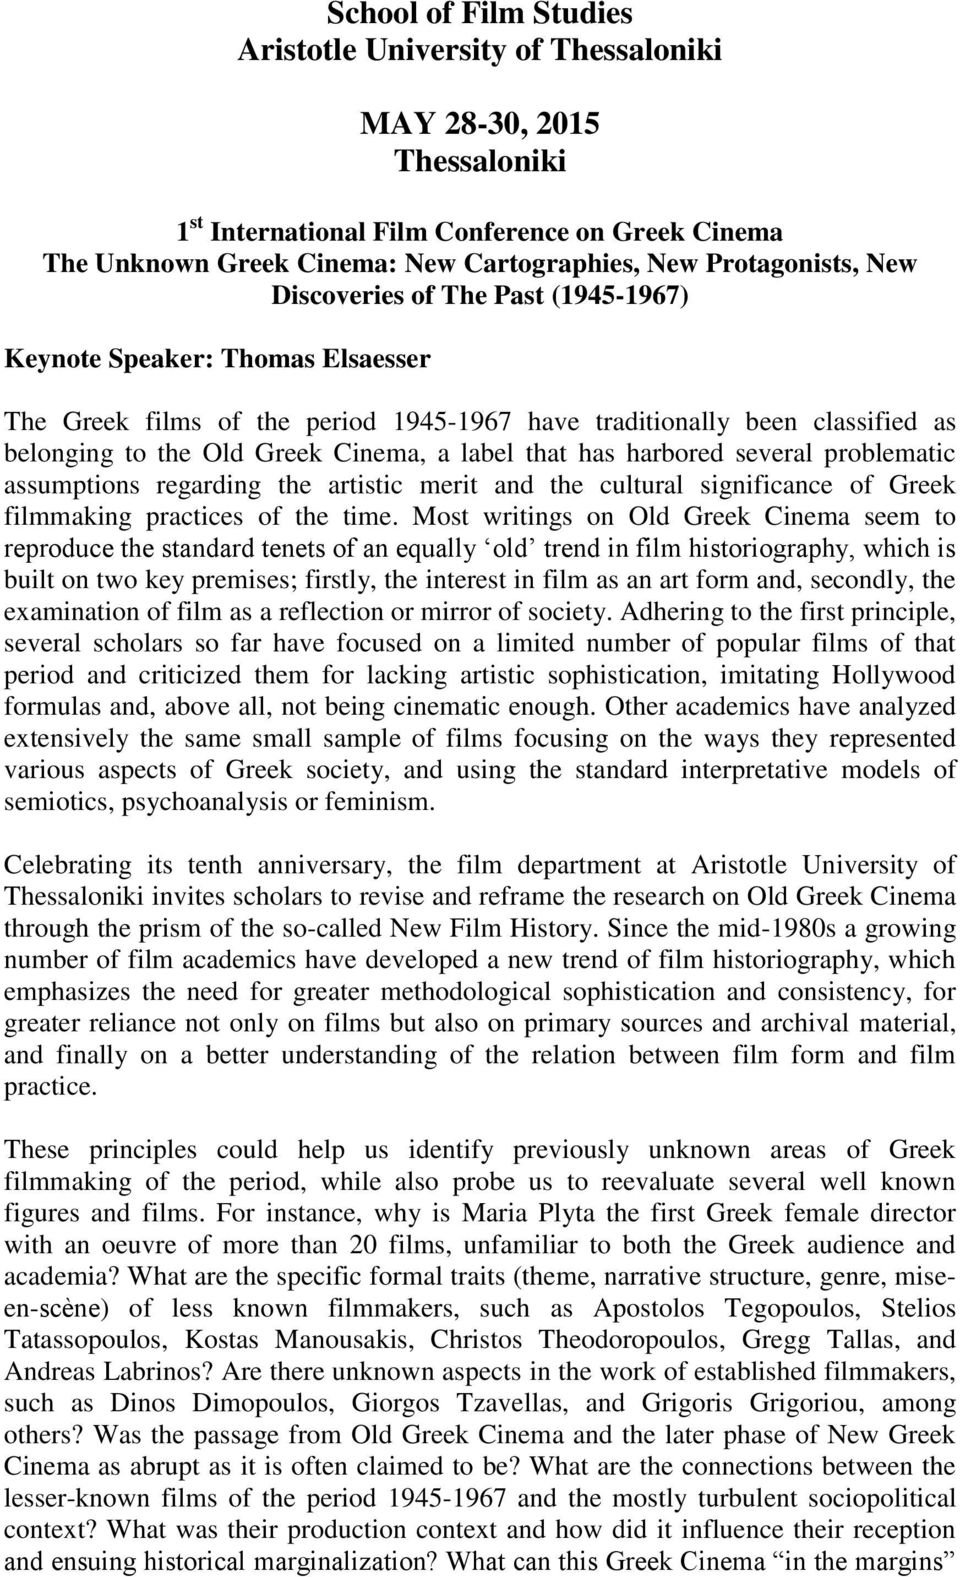 Cinema, a label that has harbored several problematic assumptions regarding the artistic merit and the cultural significance of Greek filmmaking practices of the time.